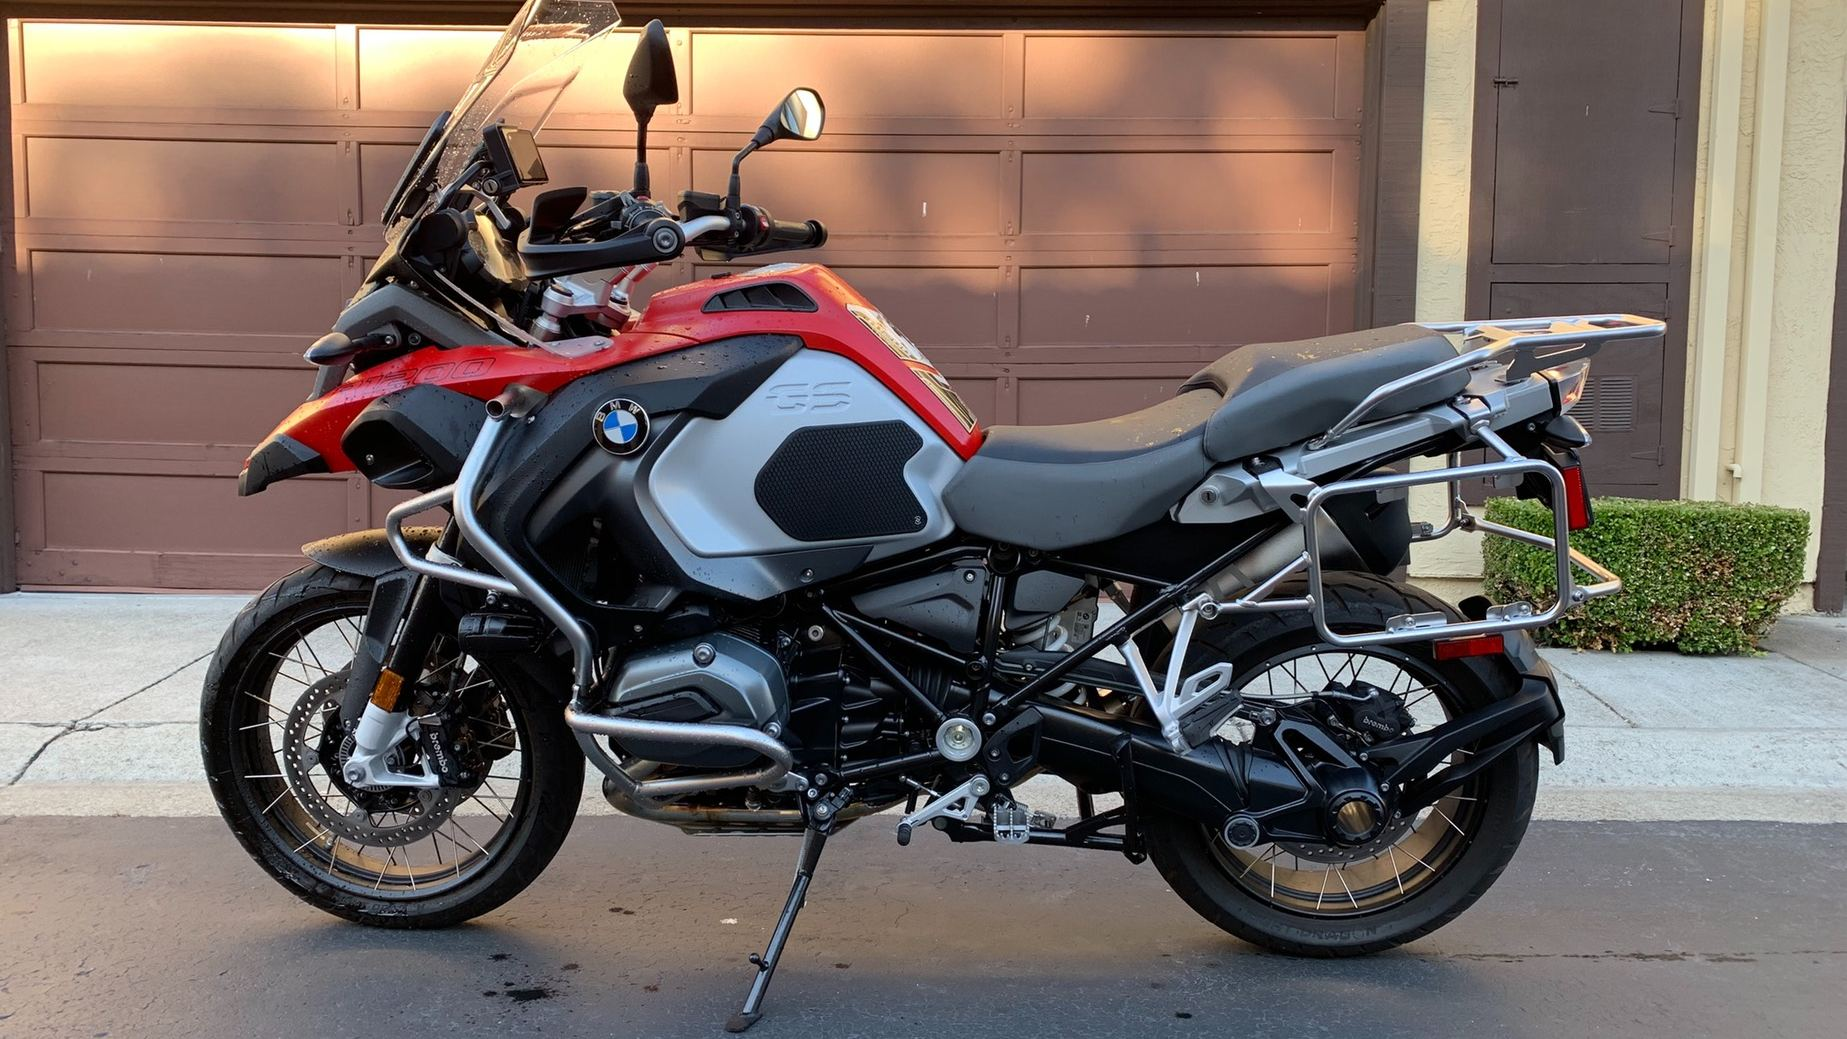 bmw r 1200 gs adventure for rent near san leandro ca riders share. Black Bedroom Furniture Sets. Home Design Ideas